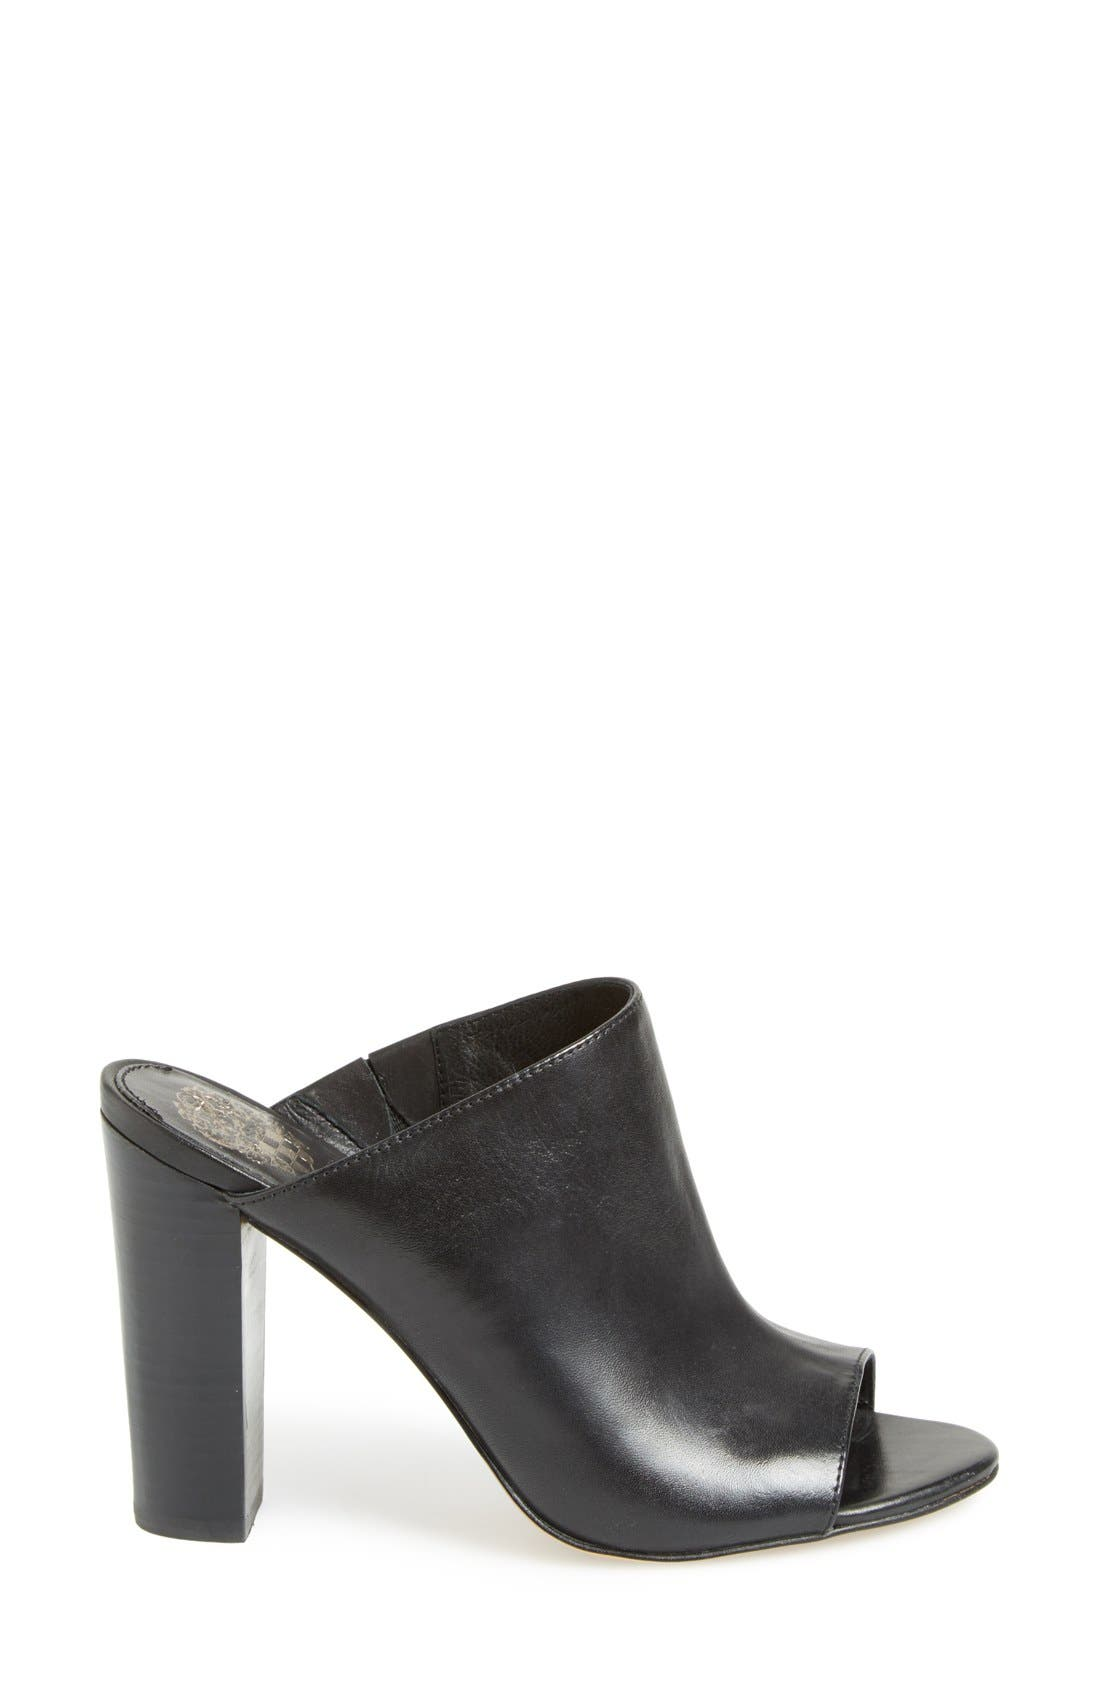 'Vestata' Leather Peep Toe Mule,                             Alternate thumbnail 6, color,                             001